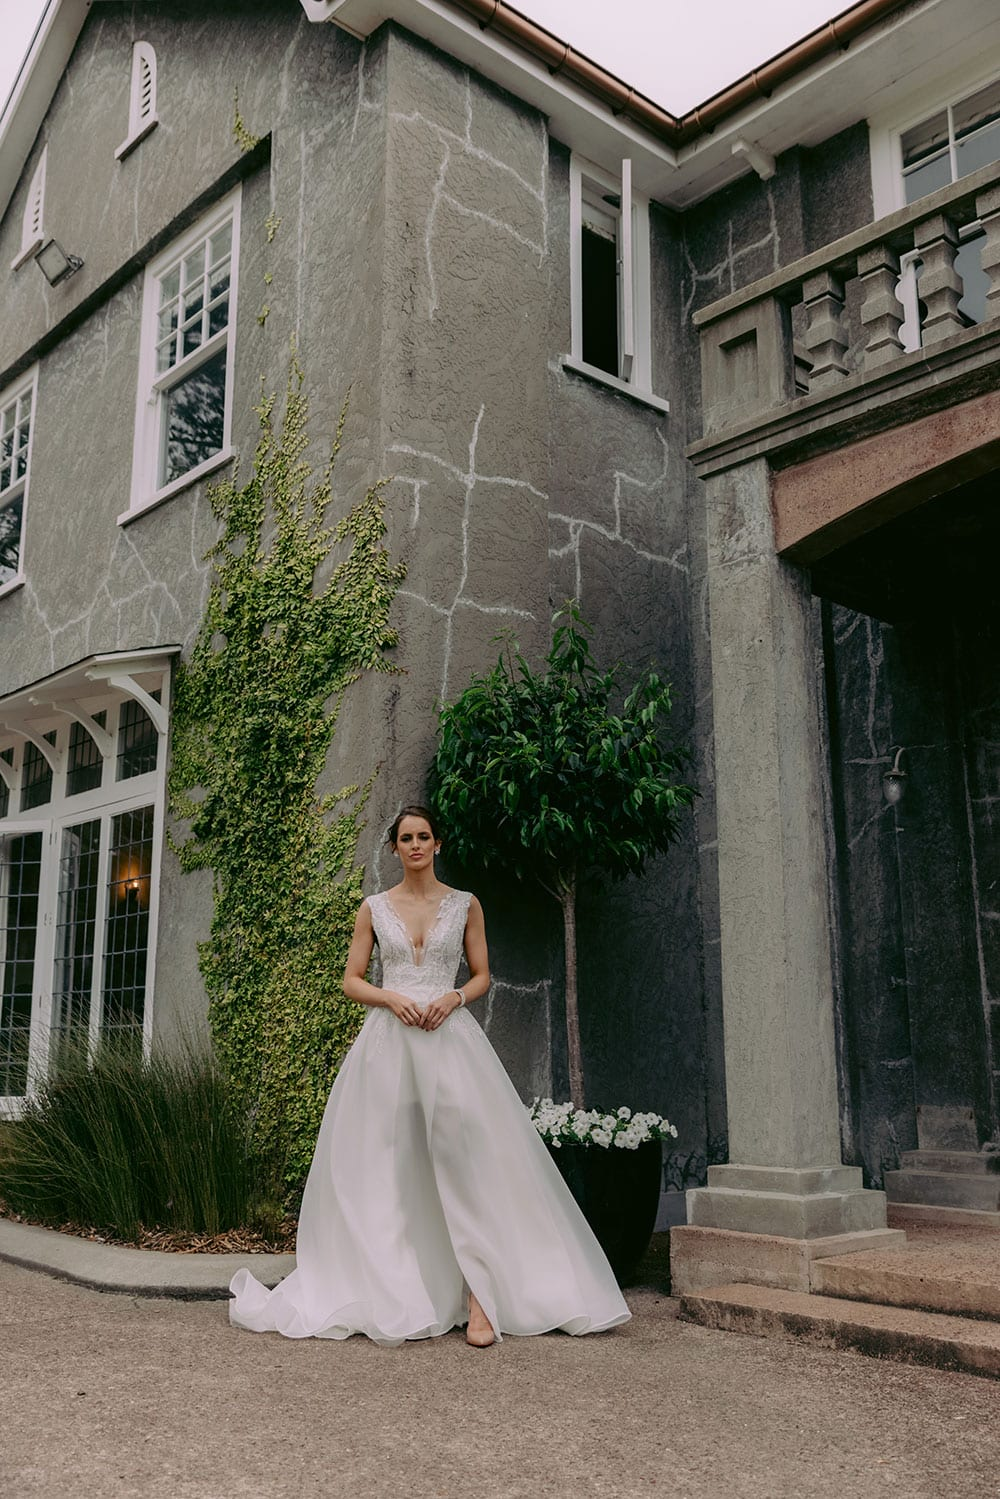 Rema Wedding gown from Vinka Design - This wedding dress has a bold design with a feminine style. Layers of dreamy satin organza with deep folds that open to reveal a split, and structured lace bodice that tapers at the waist to accentuates the figure. Model wearing gown showing full length of dress outside old heritage building in Auckland..